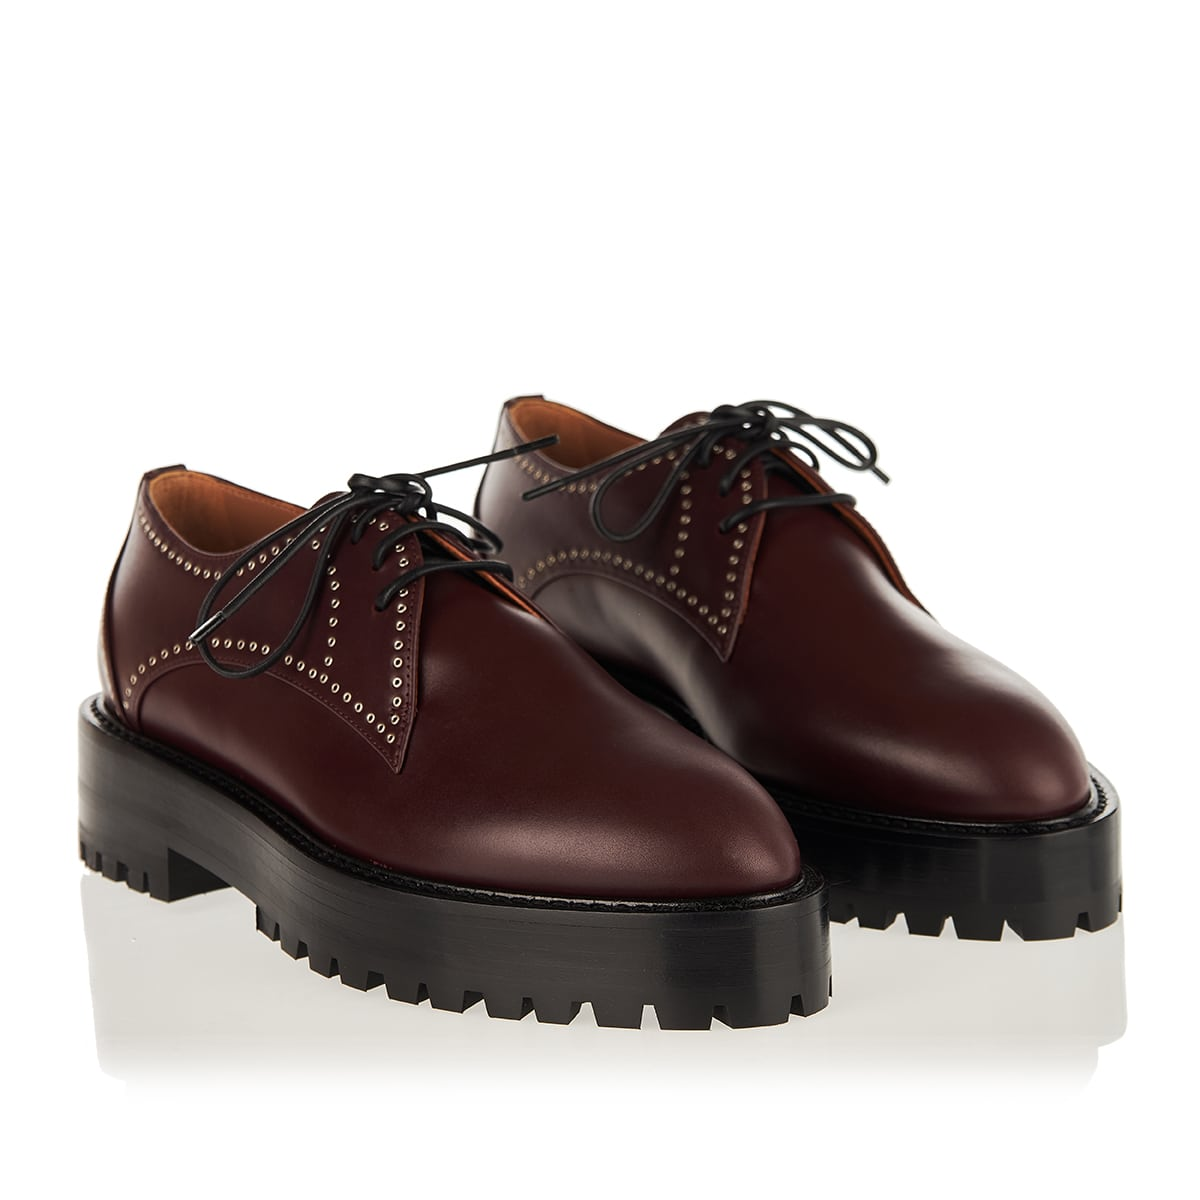 Edition studded leather derby shoes